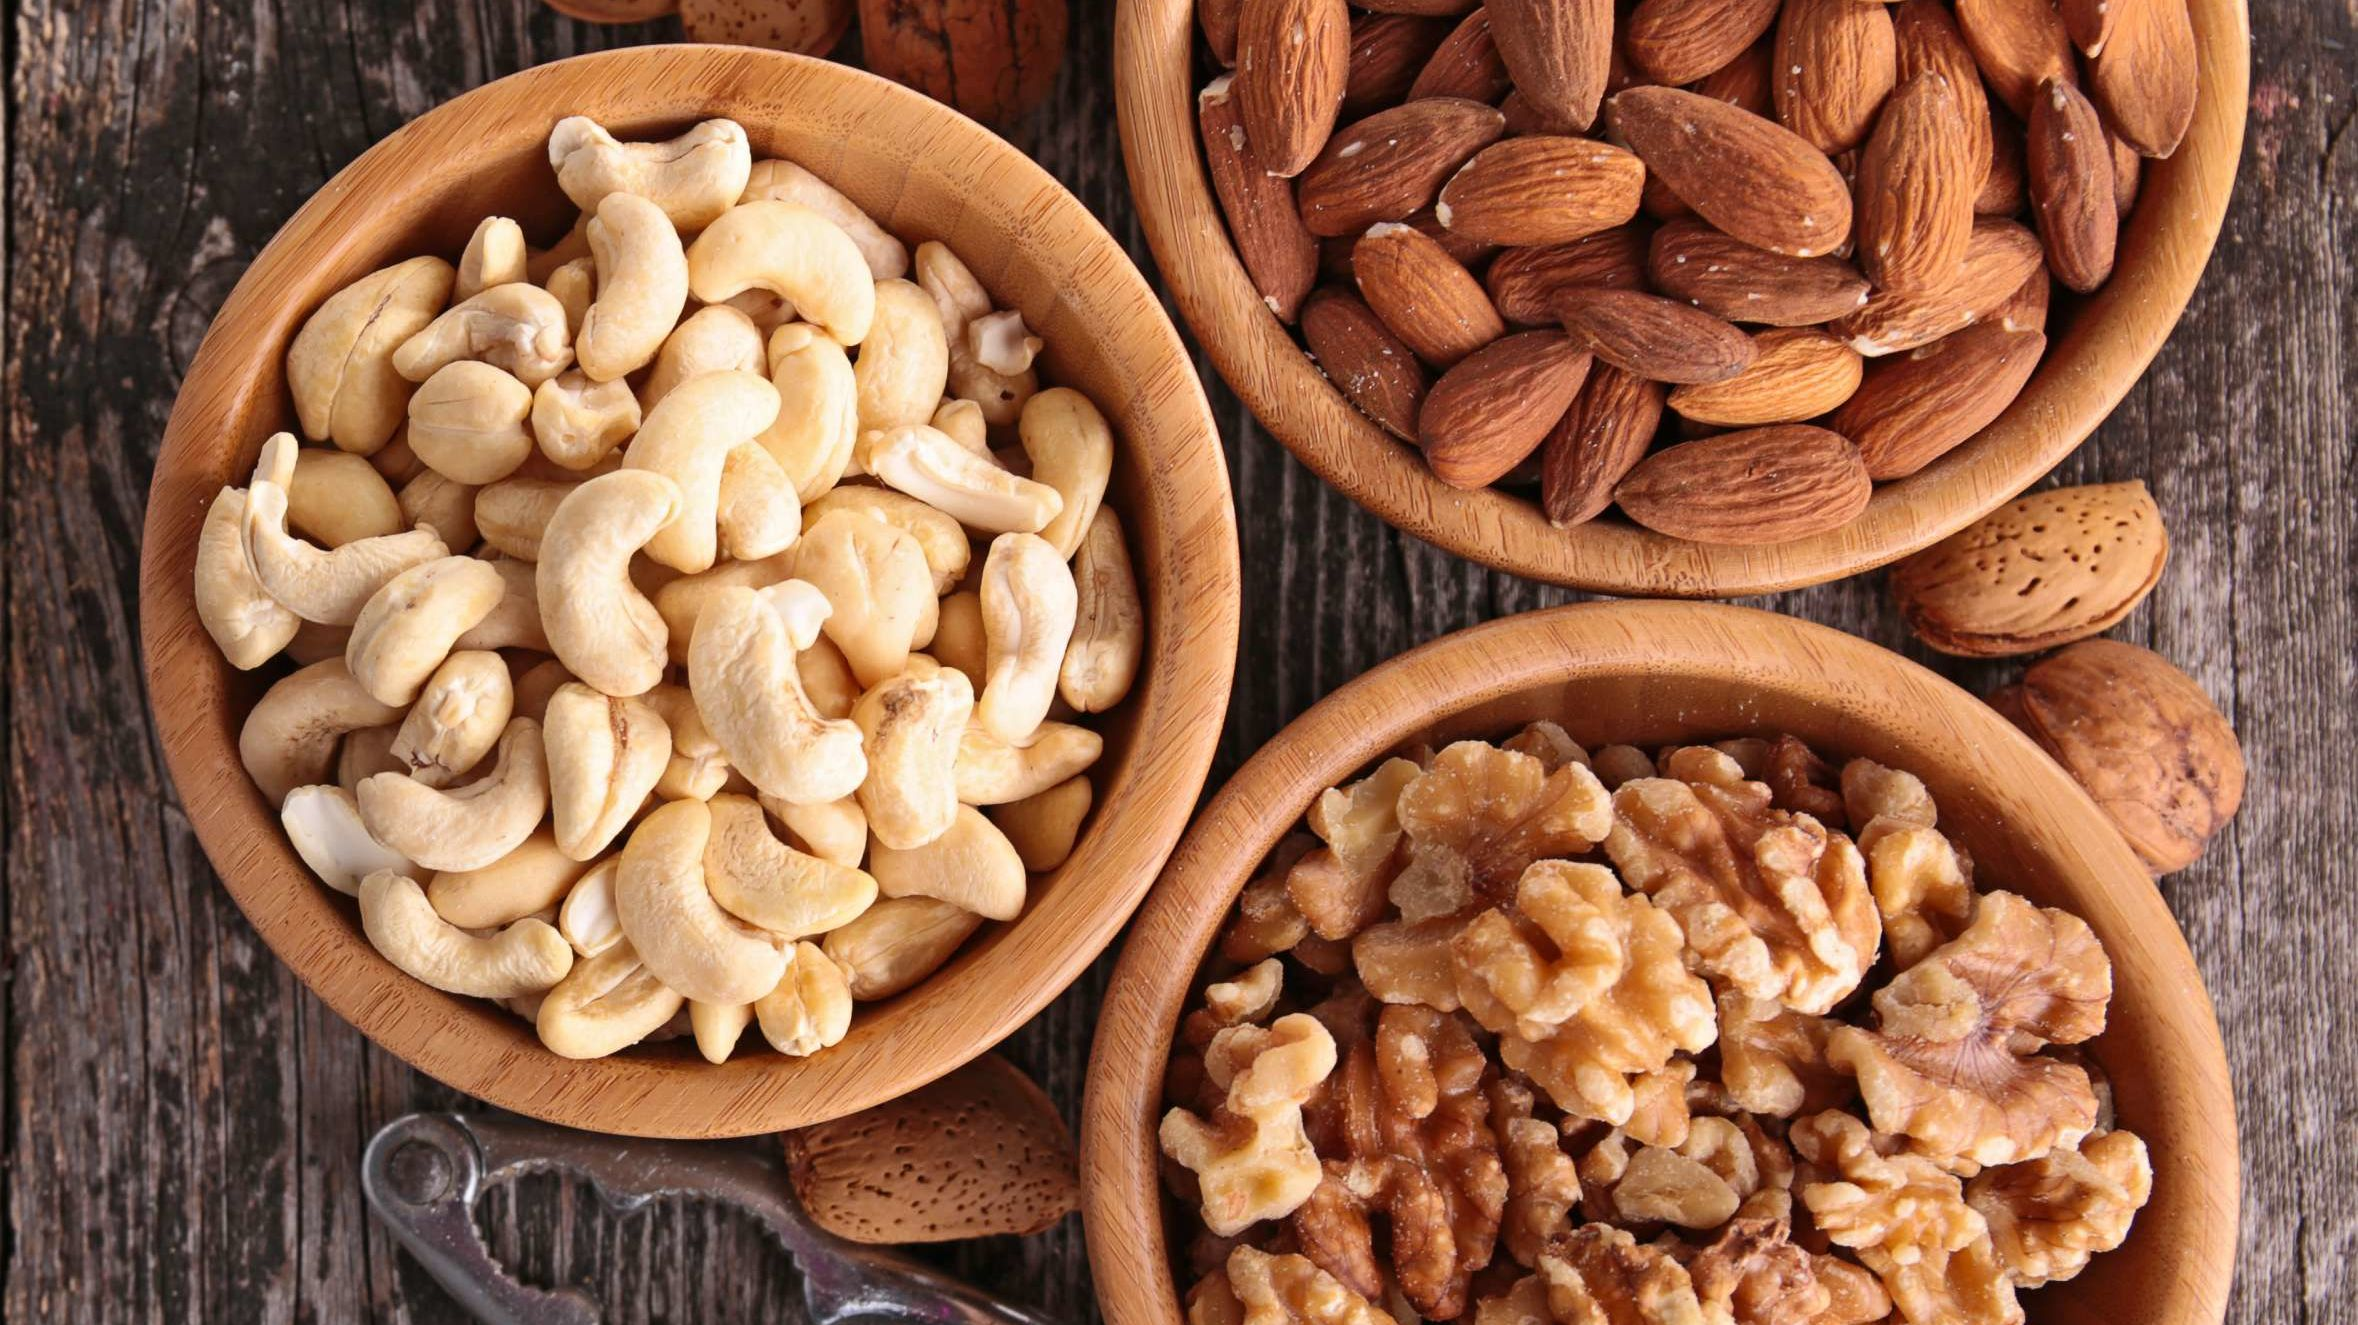 10 'Nuts' That Aren't Actually Nuts